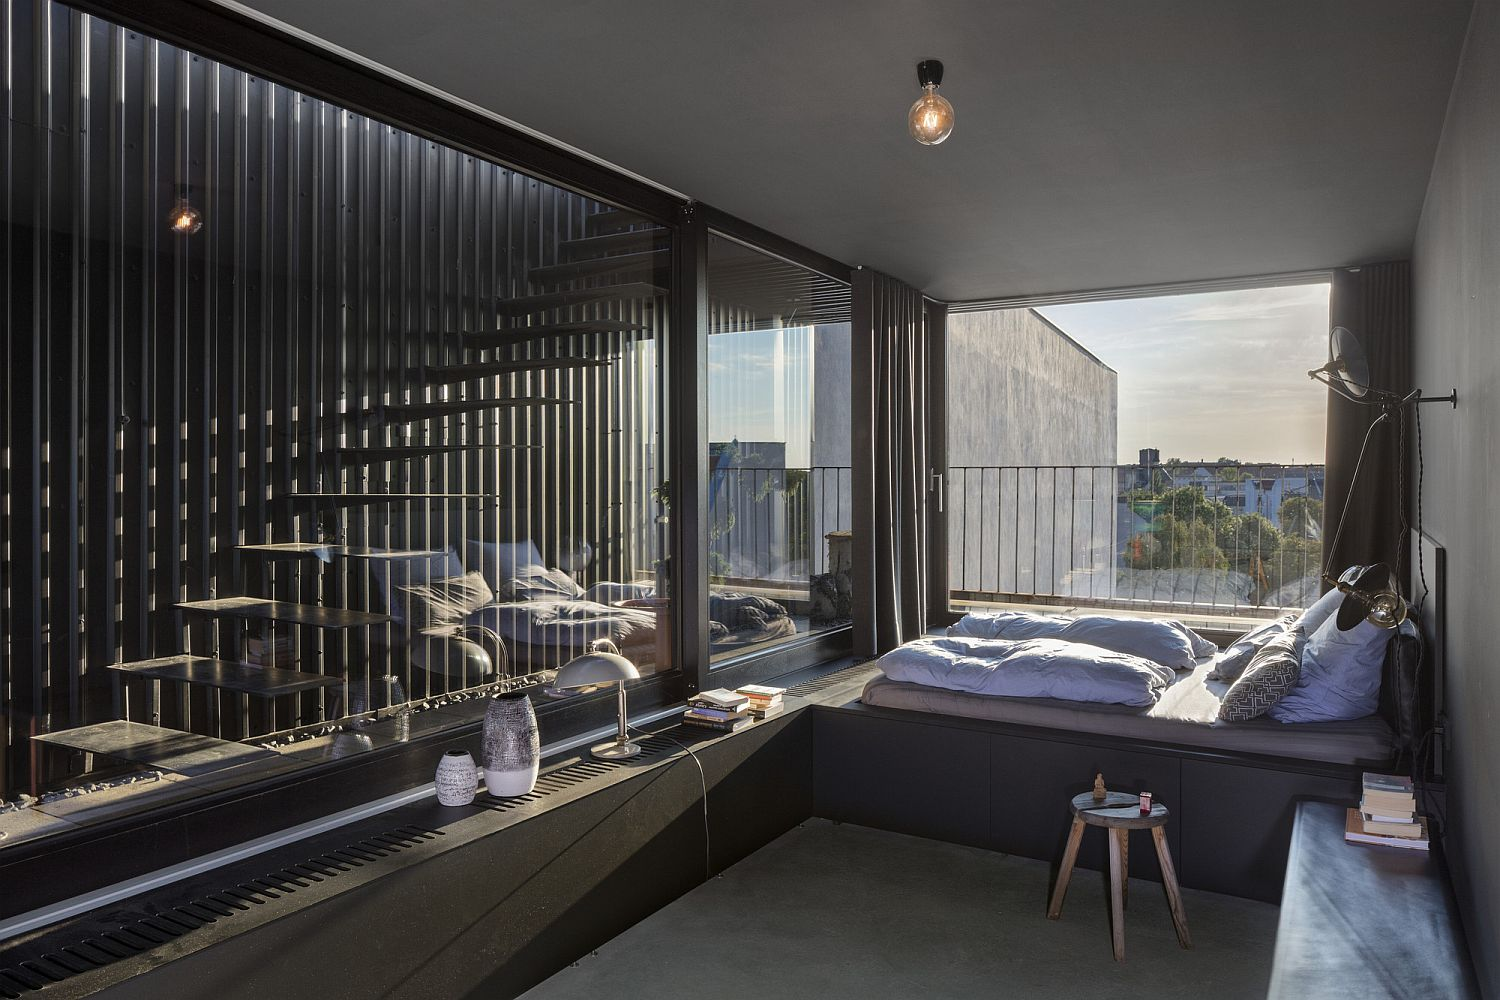 Light-filled-and-relaxing-penthouse-bedroom-with-stairway-next-to-it